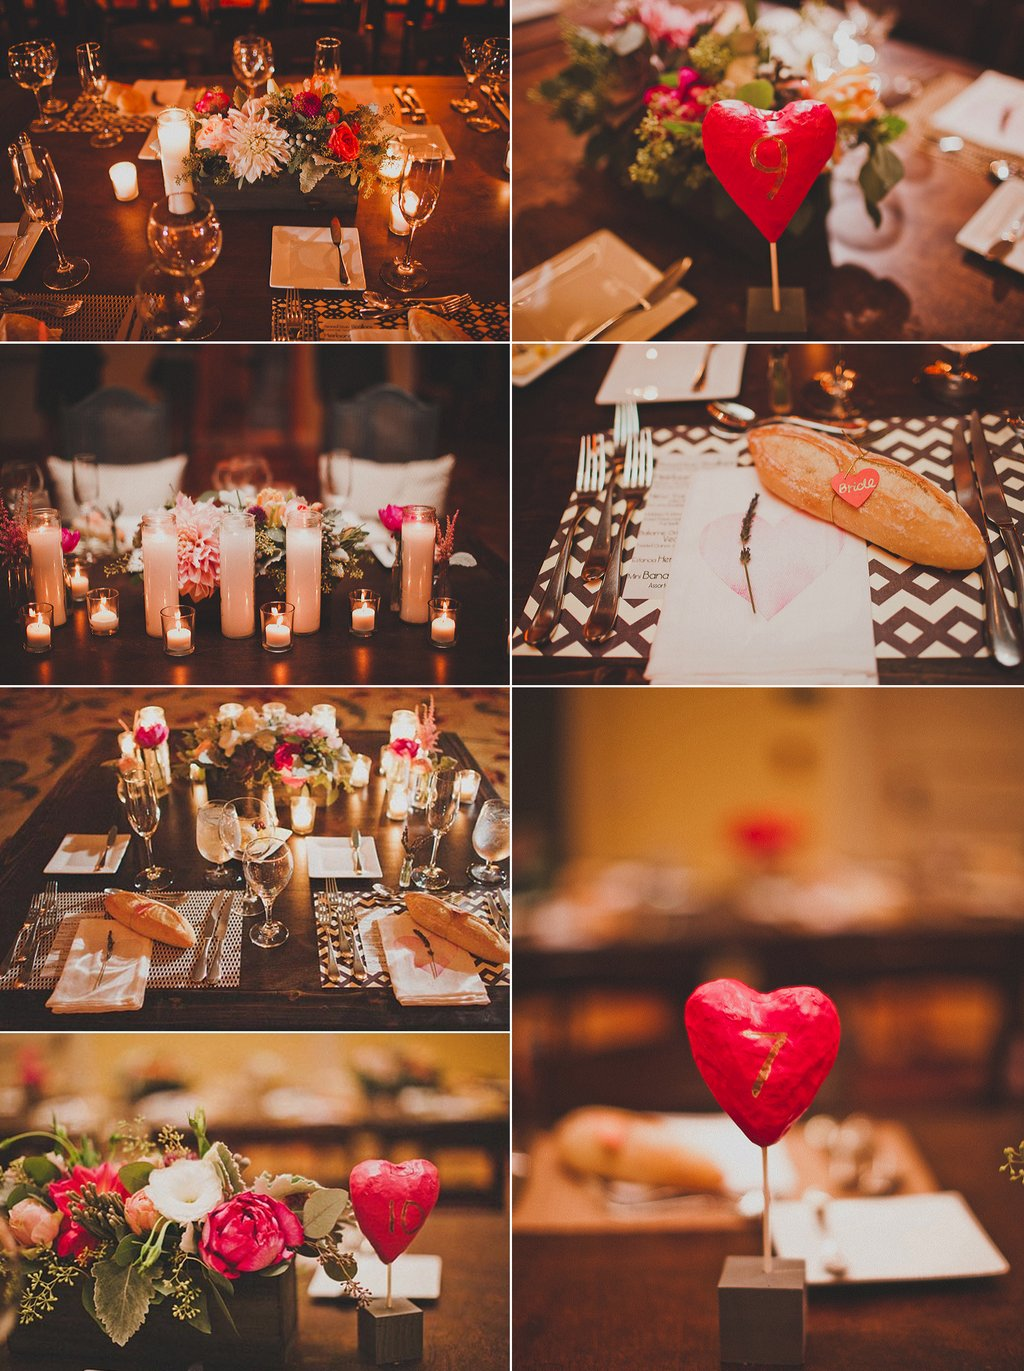 Romantic-wedding-reception-decor-candlelight-pink-red-ivory-wedding-flower-centerpieces.full